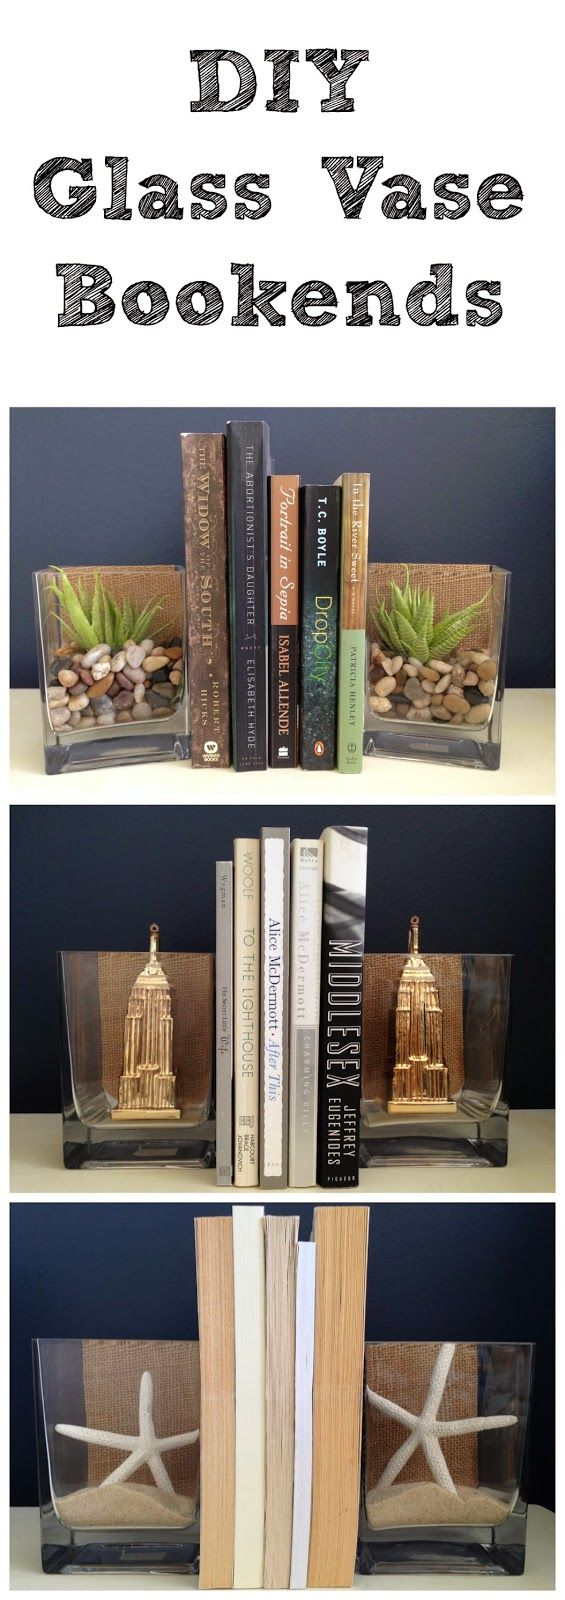 1318 best NEAT BOOKENDS images on Pinterest | Bookends, Cats and ...